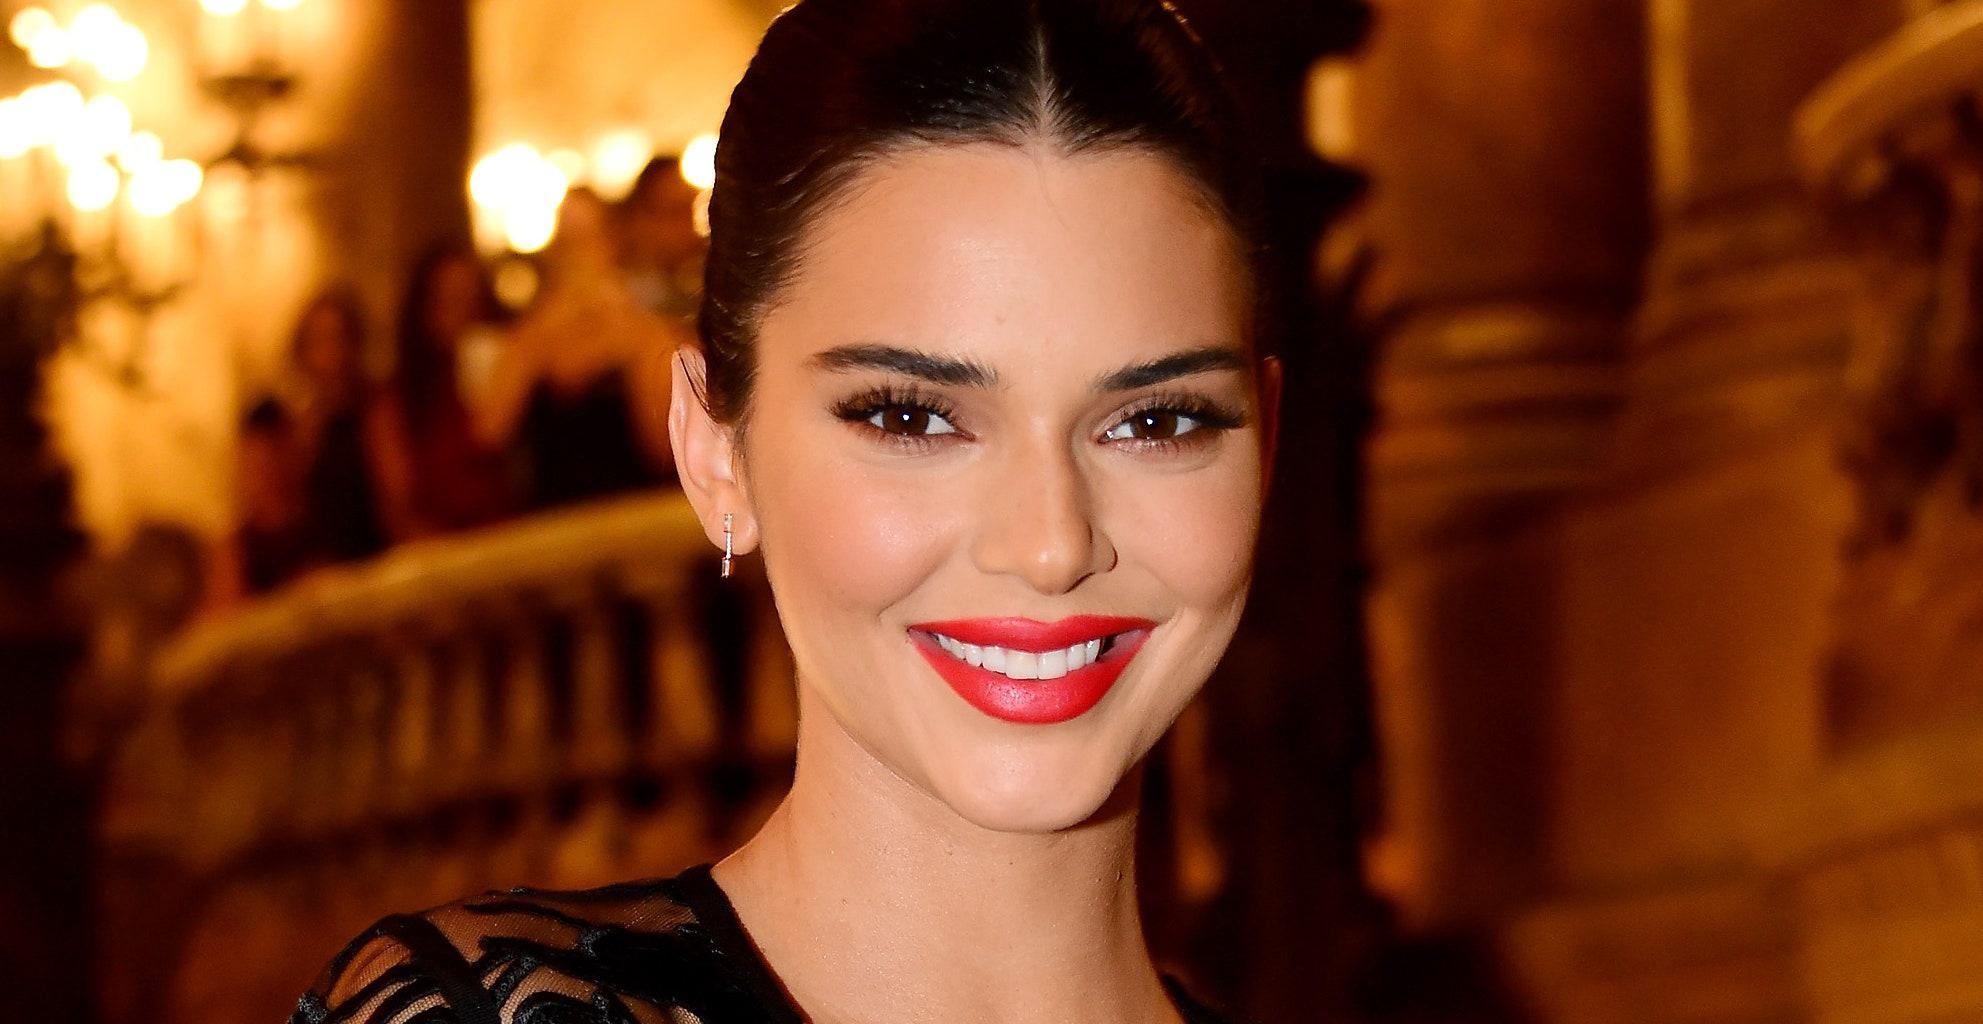 KUWTK: Intruder Arrested After Breaking Into Kendall Jenner's Home And Swimming In Her Pool - Details!